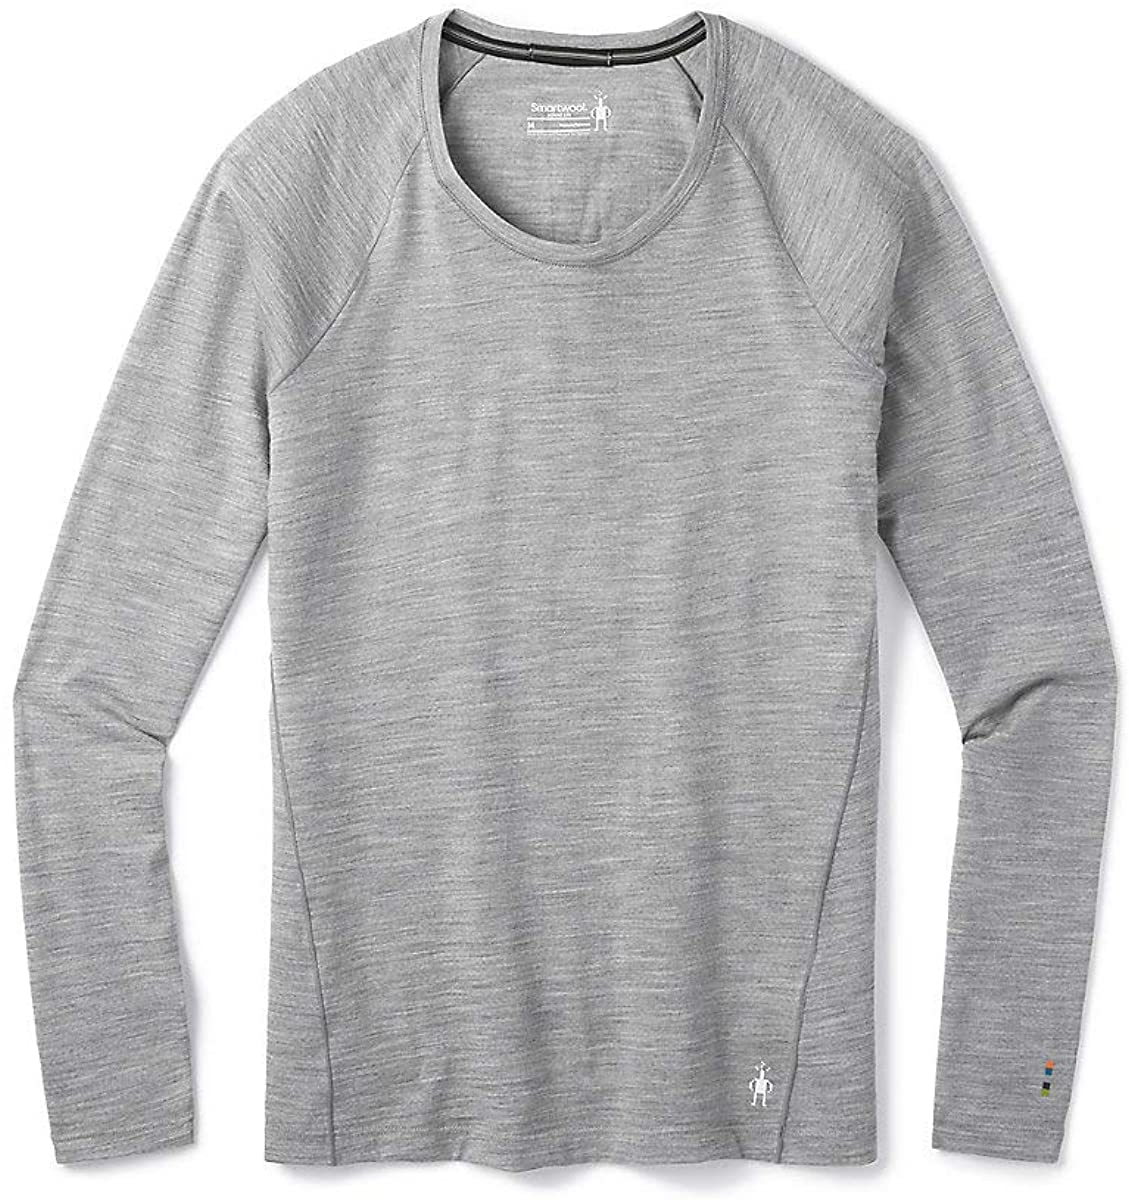 Women's Smartwool Merino 150 Base Layer Long Sleeve in Light Gray Heather from the side view